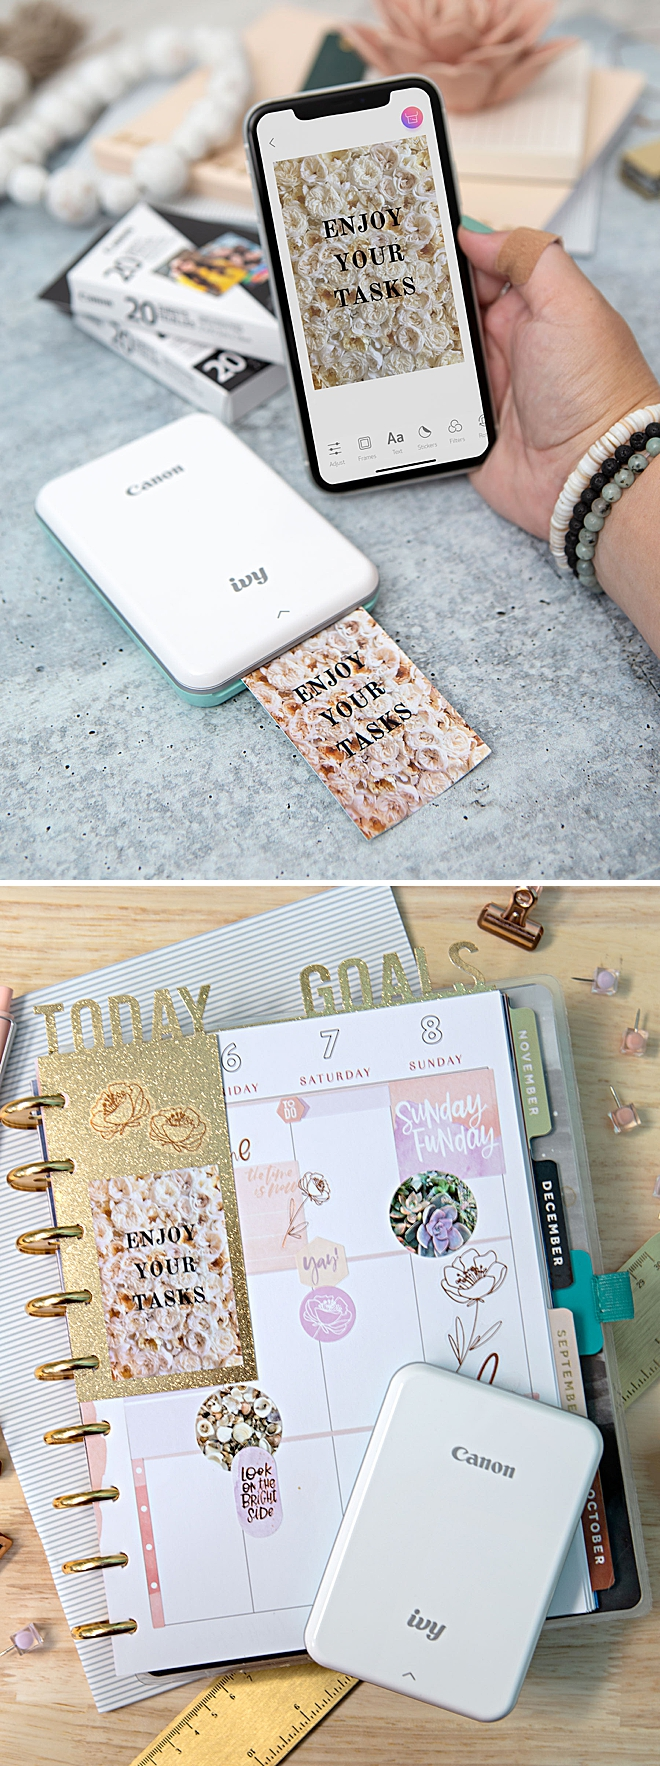 Use Your Canon IVY Stickers To Embellish Your Planner